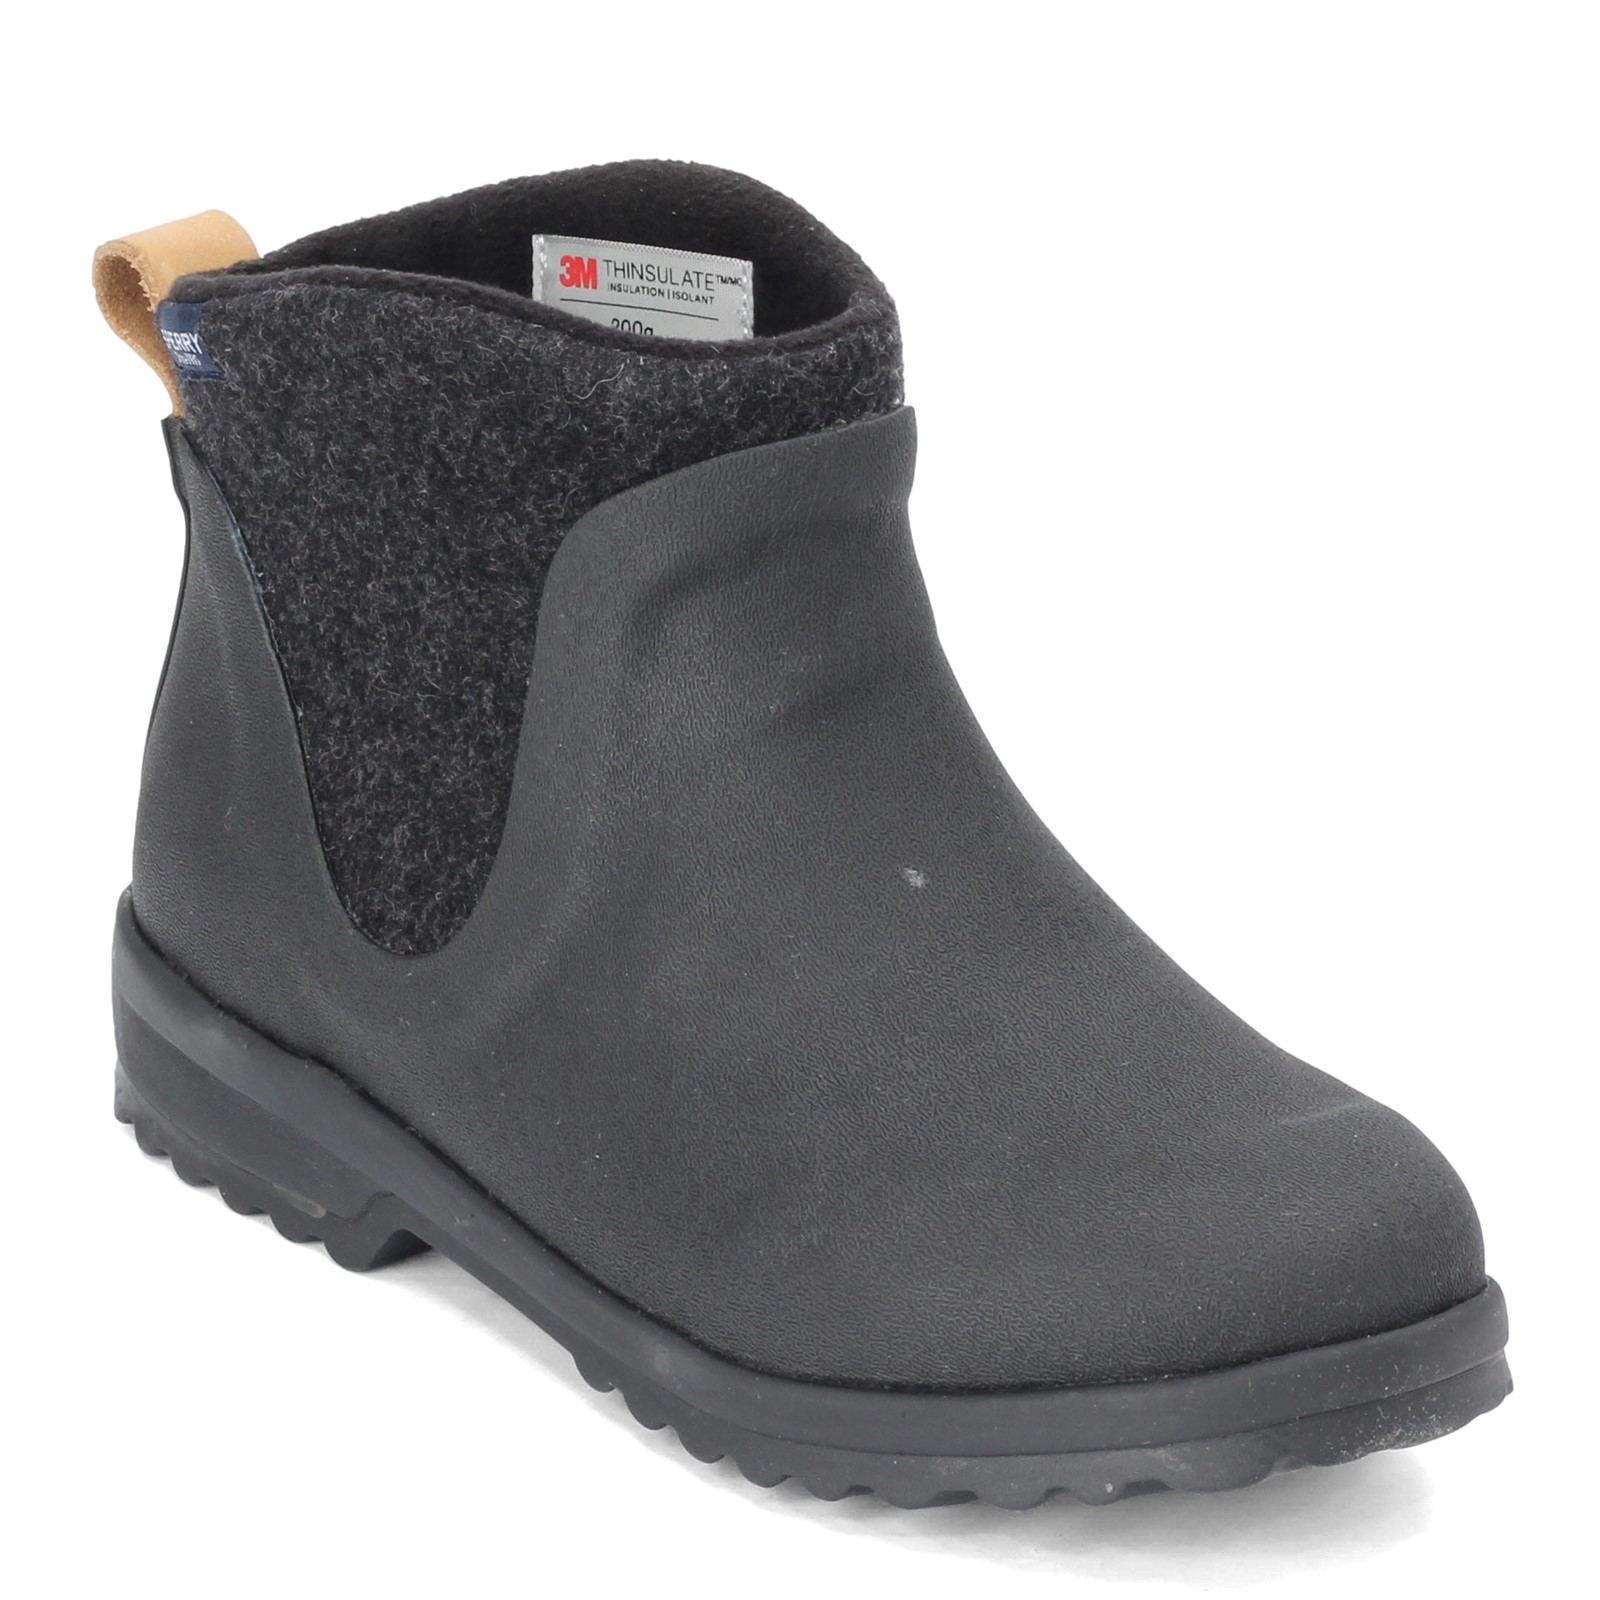 Women's Sperry, Maritime Gale Boots